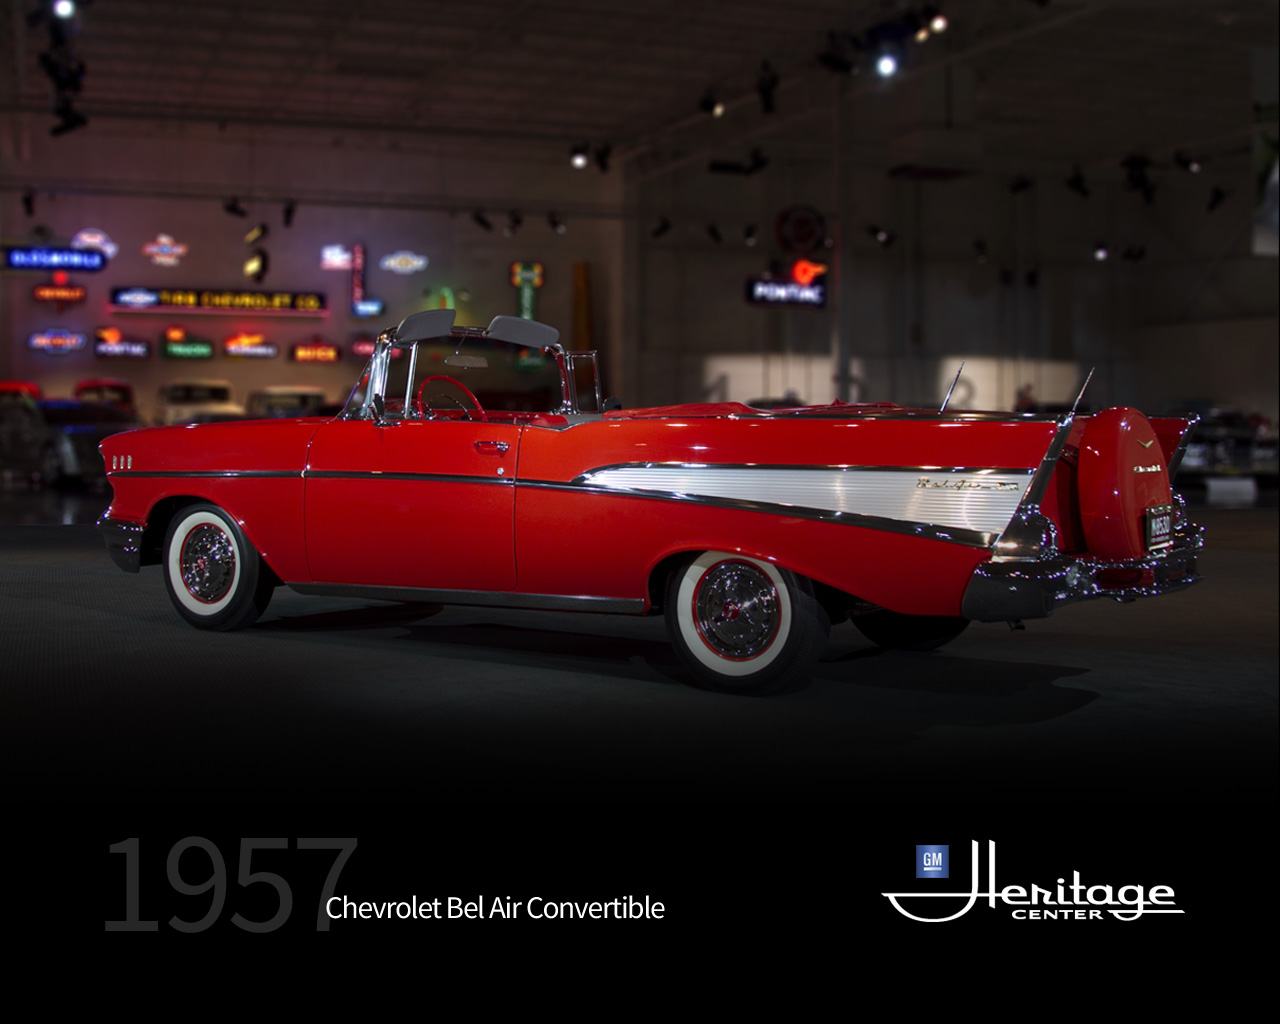 Gm Heritage Center Collection 1957 Chevrolet Bel Air Convertible Chevy Colors Download Wallpaper